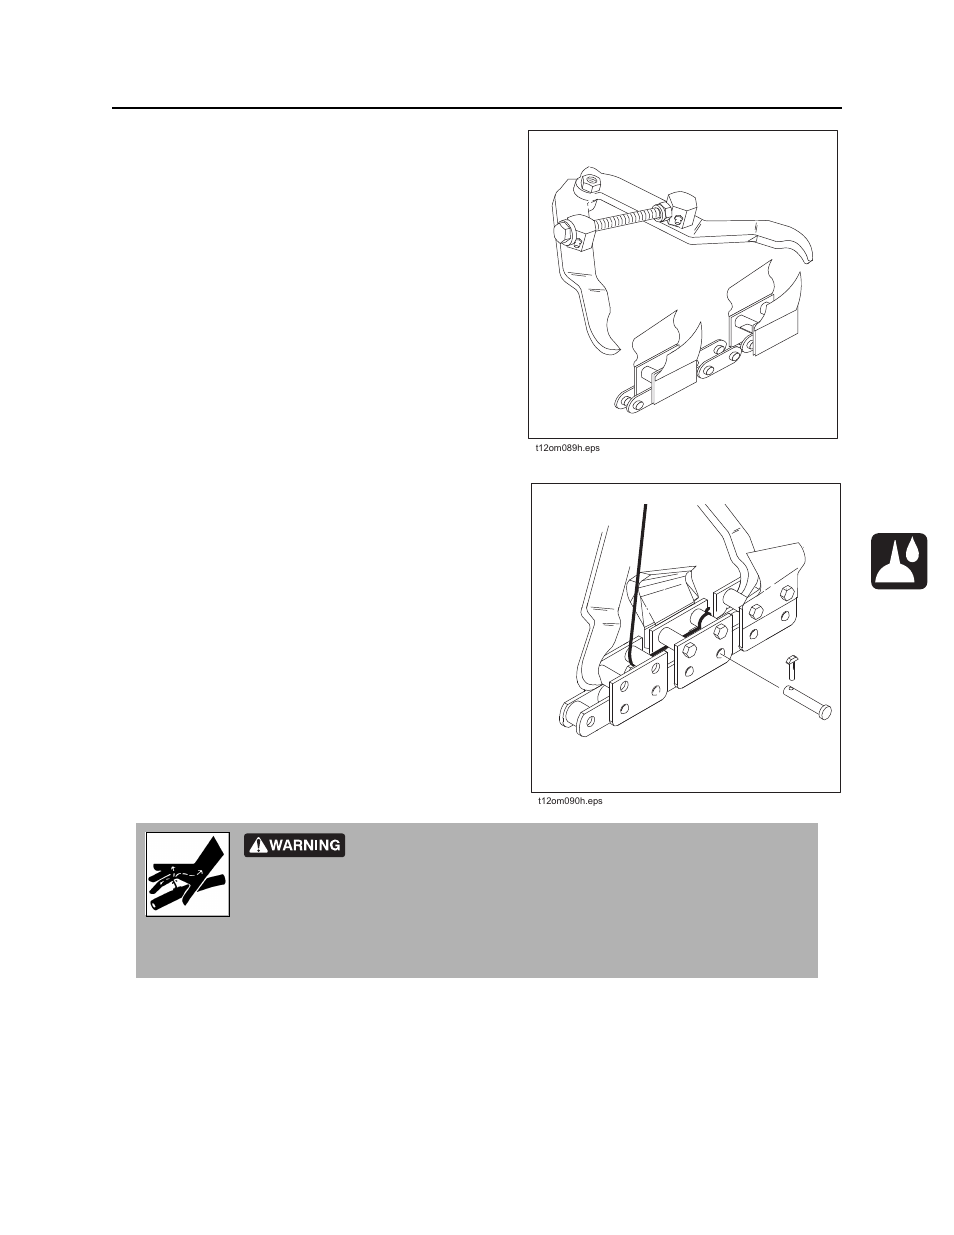 410sx operator s manual ditch witch 410sx user manual page 112 rh manualsdir com User Manual Guide Instruction Manual